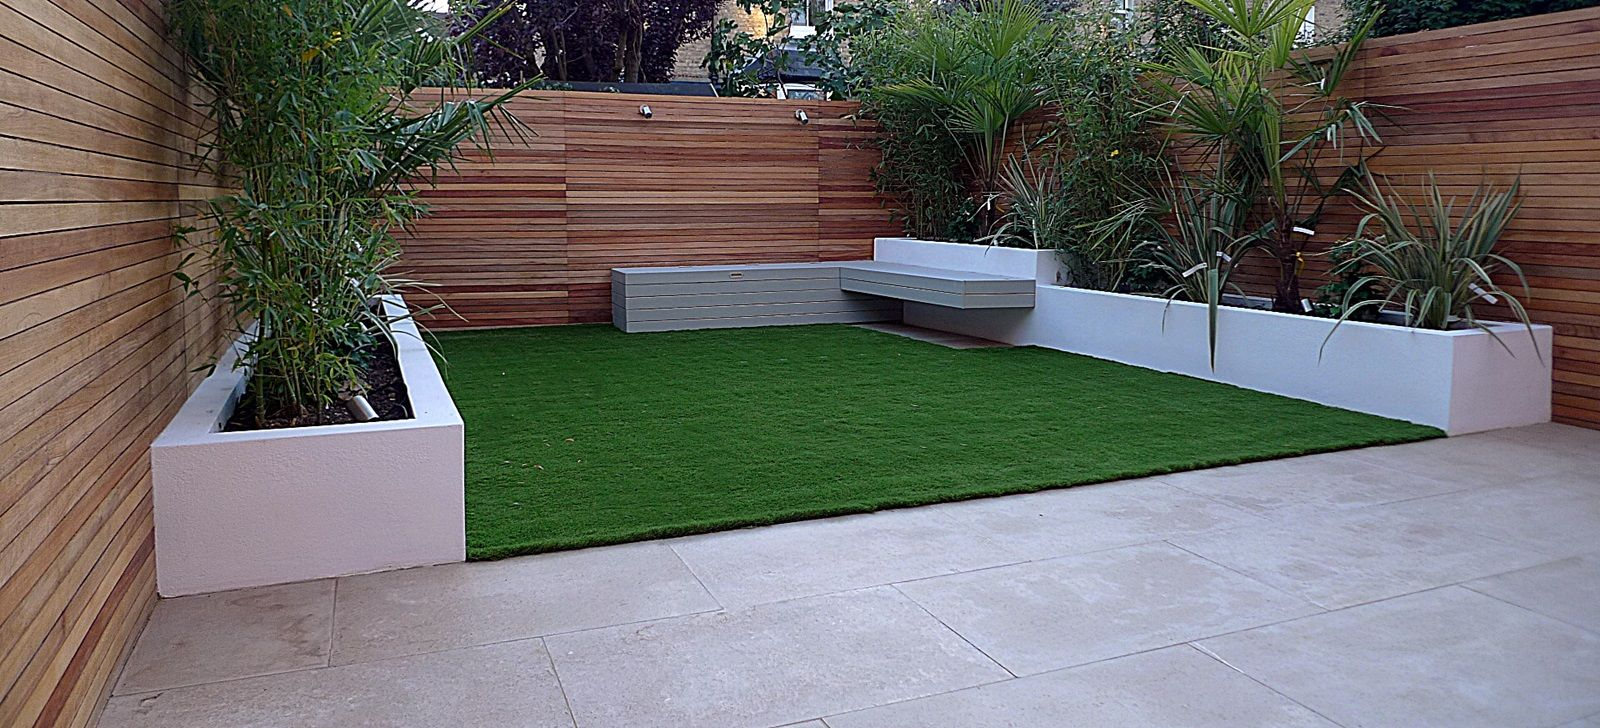 Artificial Grass Garden Designs small gardens rtificial grass landscape artificial lawn sports artificial turf leisure artificial lawn artificial Modern Garden Design Raised Beds Hardwood Privacy Screen Ceadr Trellis Fence Artificial Grass Floating Storage Bench